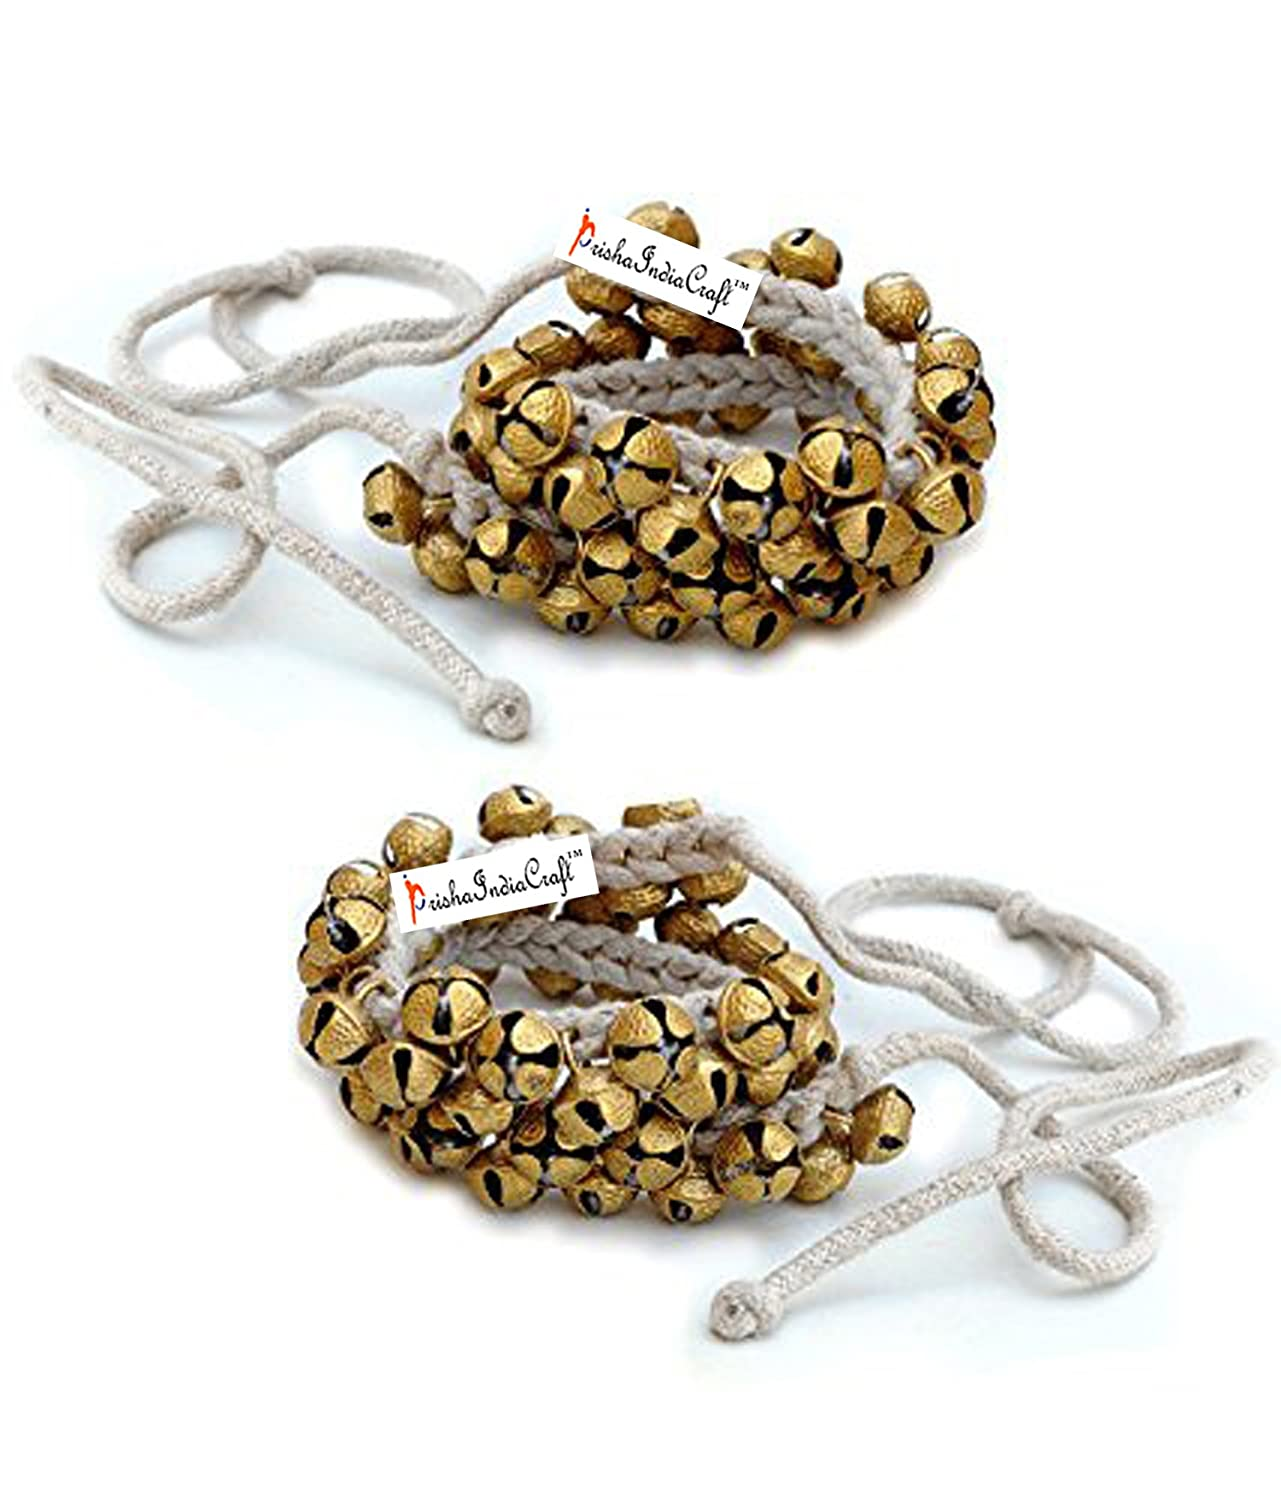 Prisha India Craft ® Kathak Ghungroo Pair, (25+25) (16 No. Ghungroo) Big Bells Best quality Tied with CottonCord Indian Classical Dancers Anklet Musical Instrument